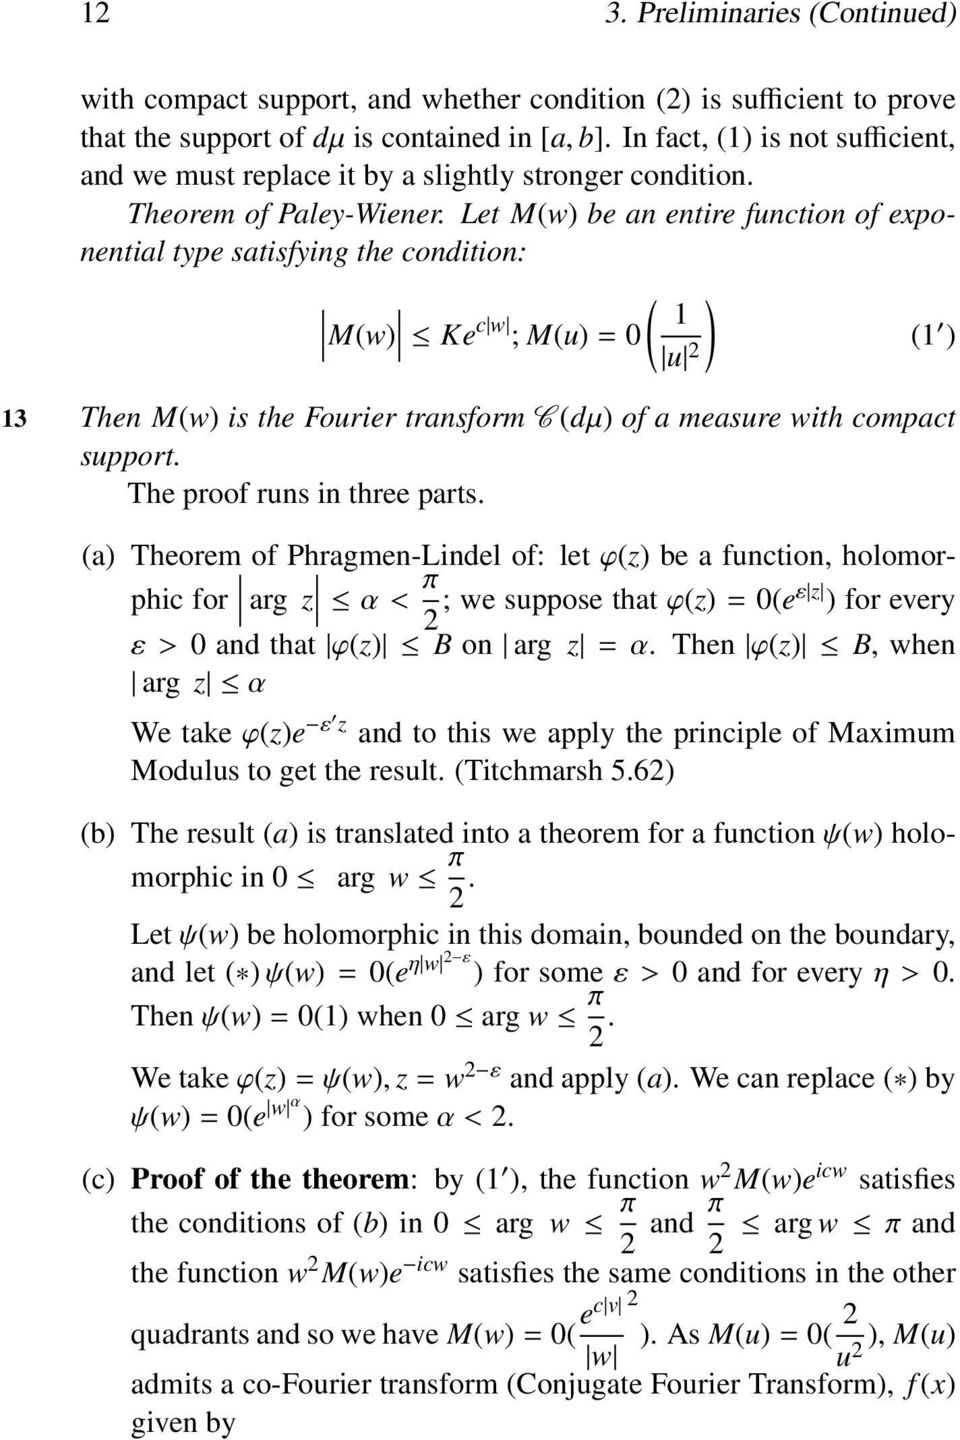 Let M(w) be an entire function of exponential type satisfying the condition: ( ) M(w) 1 Ke c w ; M(u)=0 u 2 (1 ) 13 Then M(w) is the Fourier transform C (dµ) of a measure with compact support.